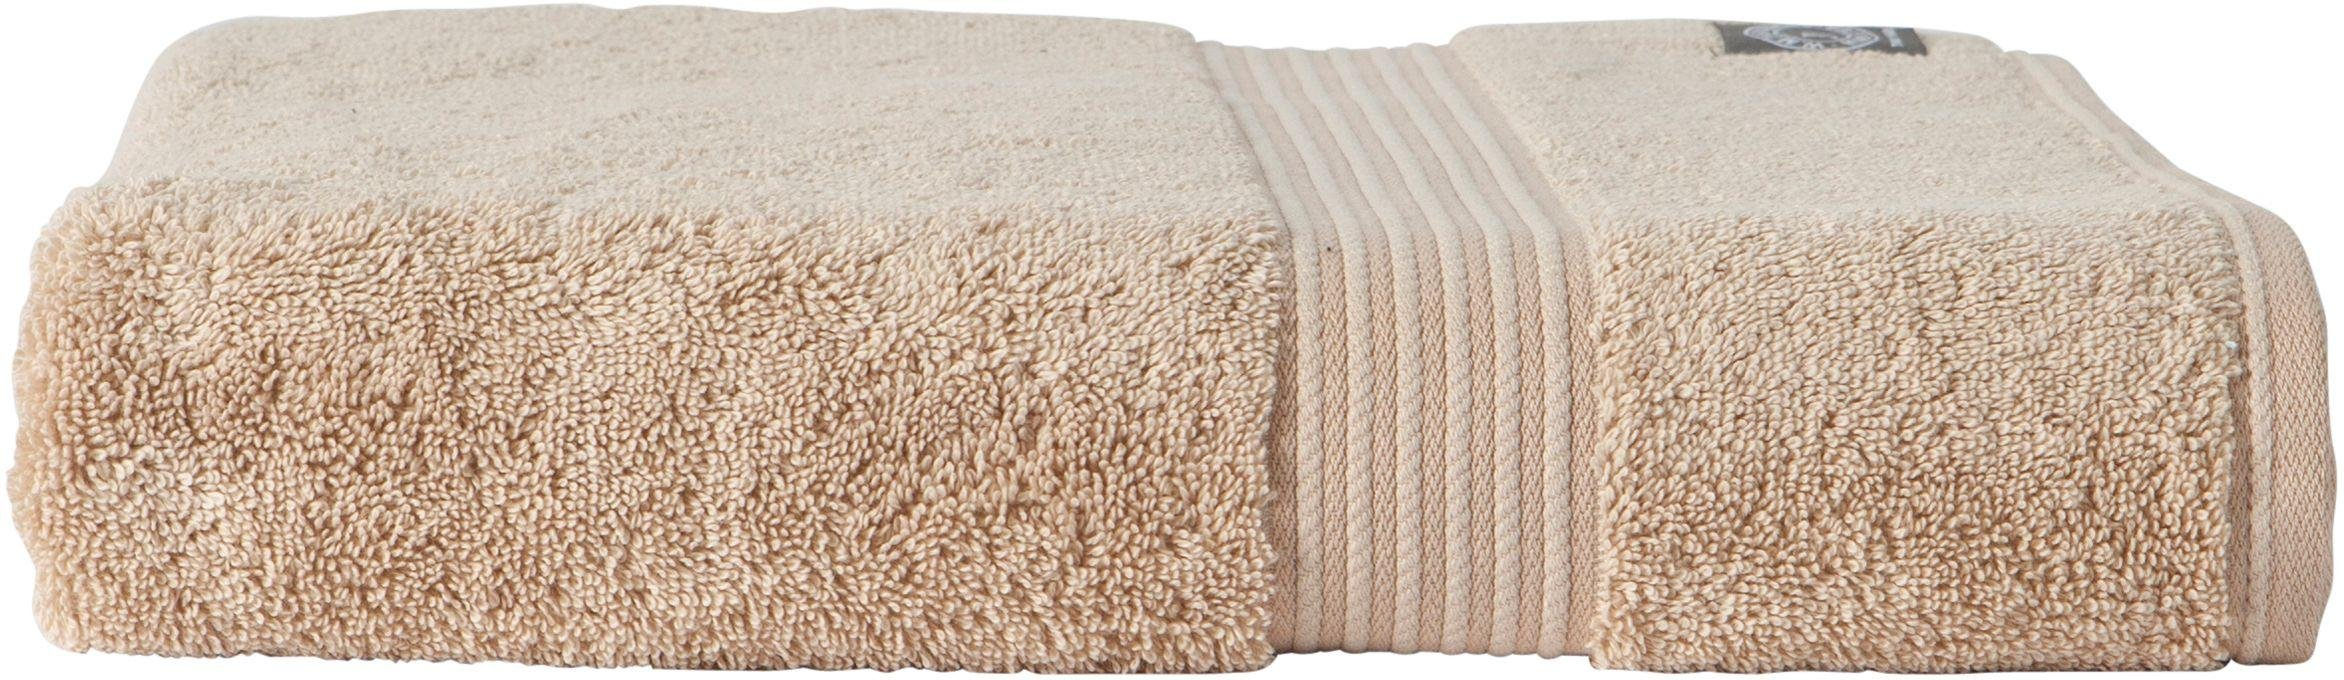 Image of Christy - Supreme Hygro - Bath - Towel - Stone